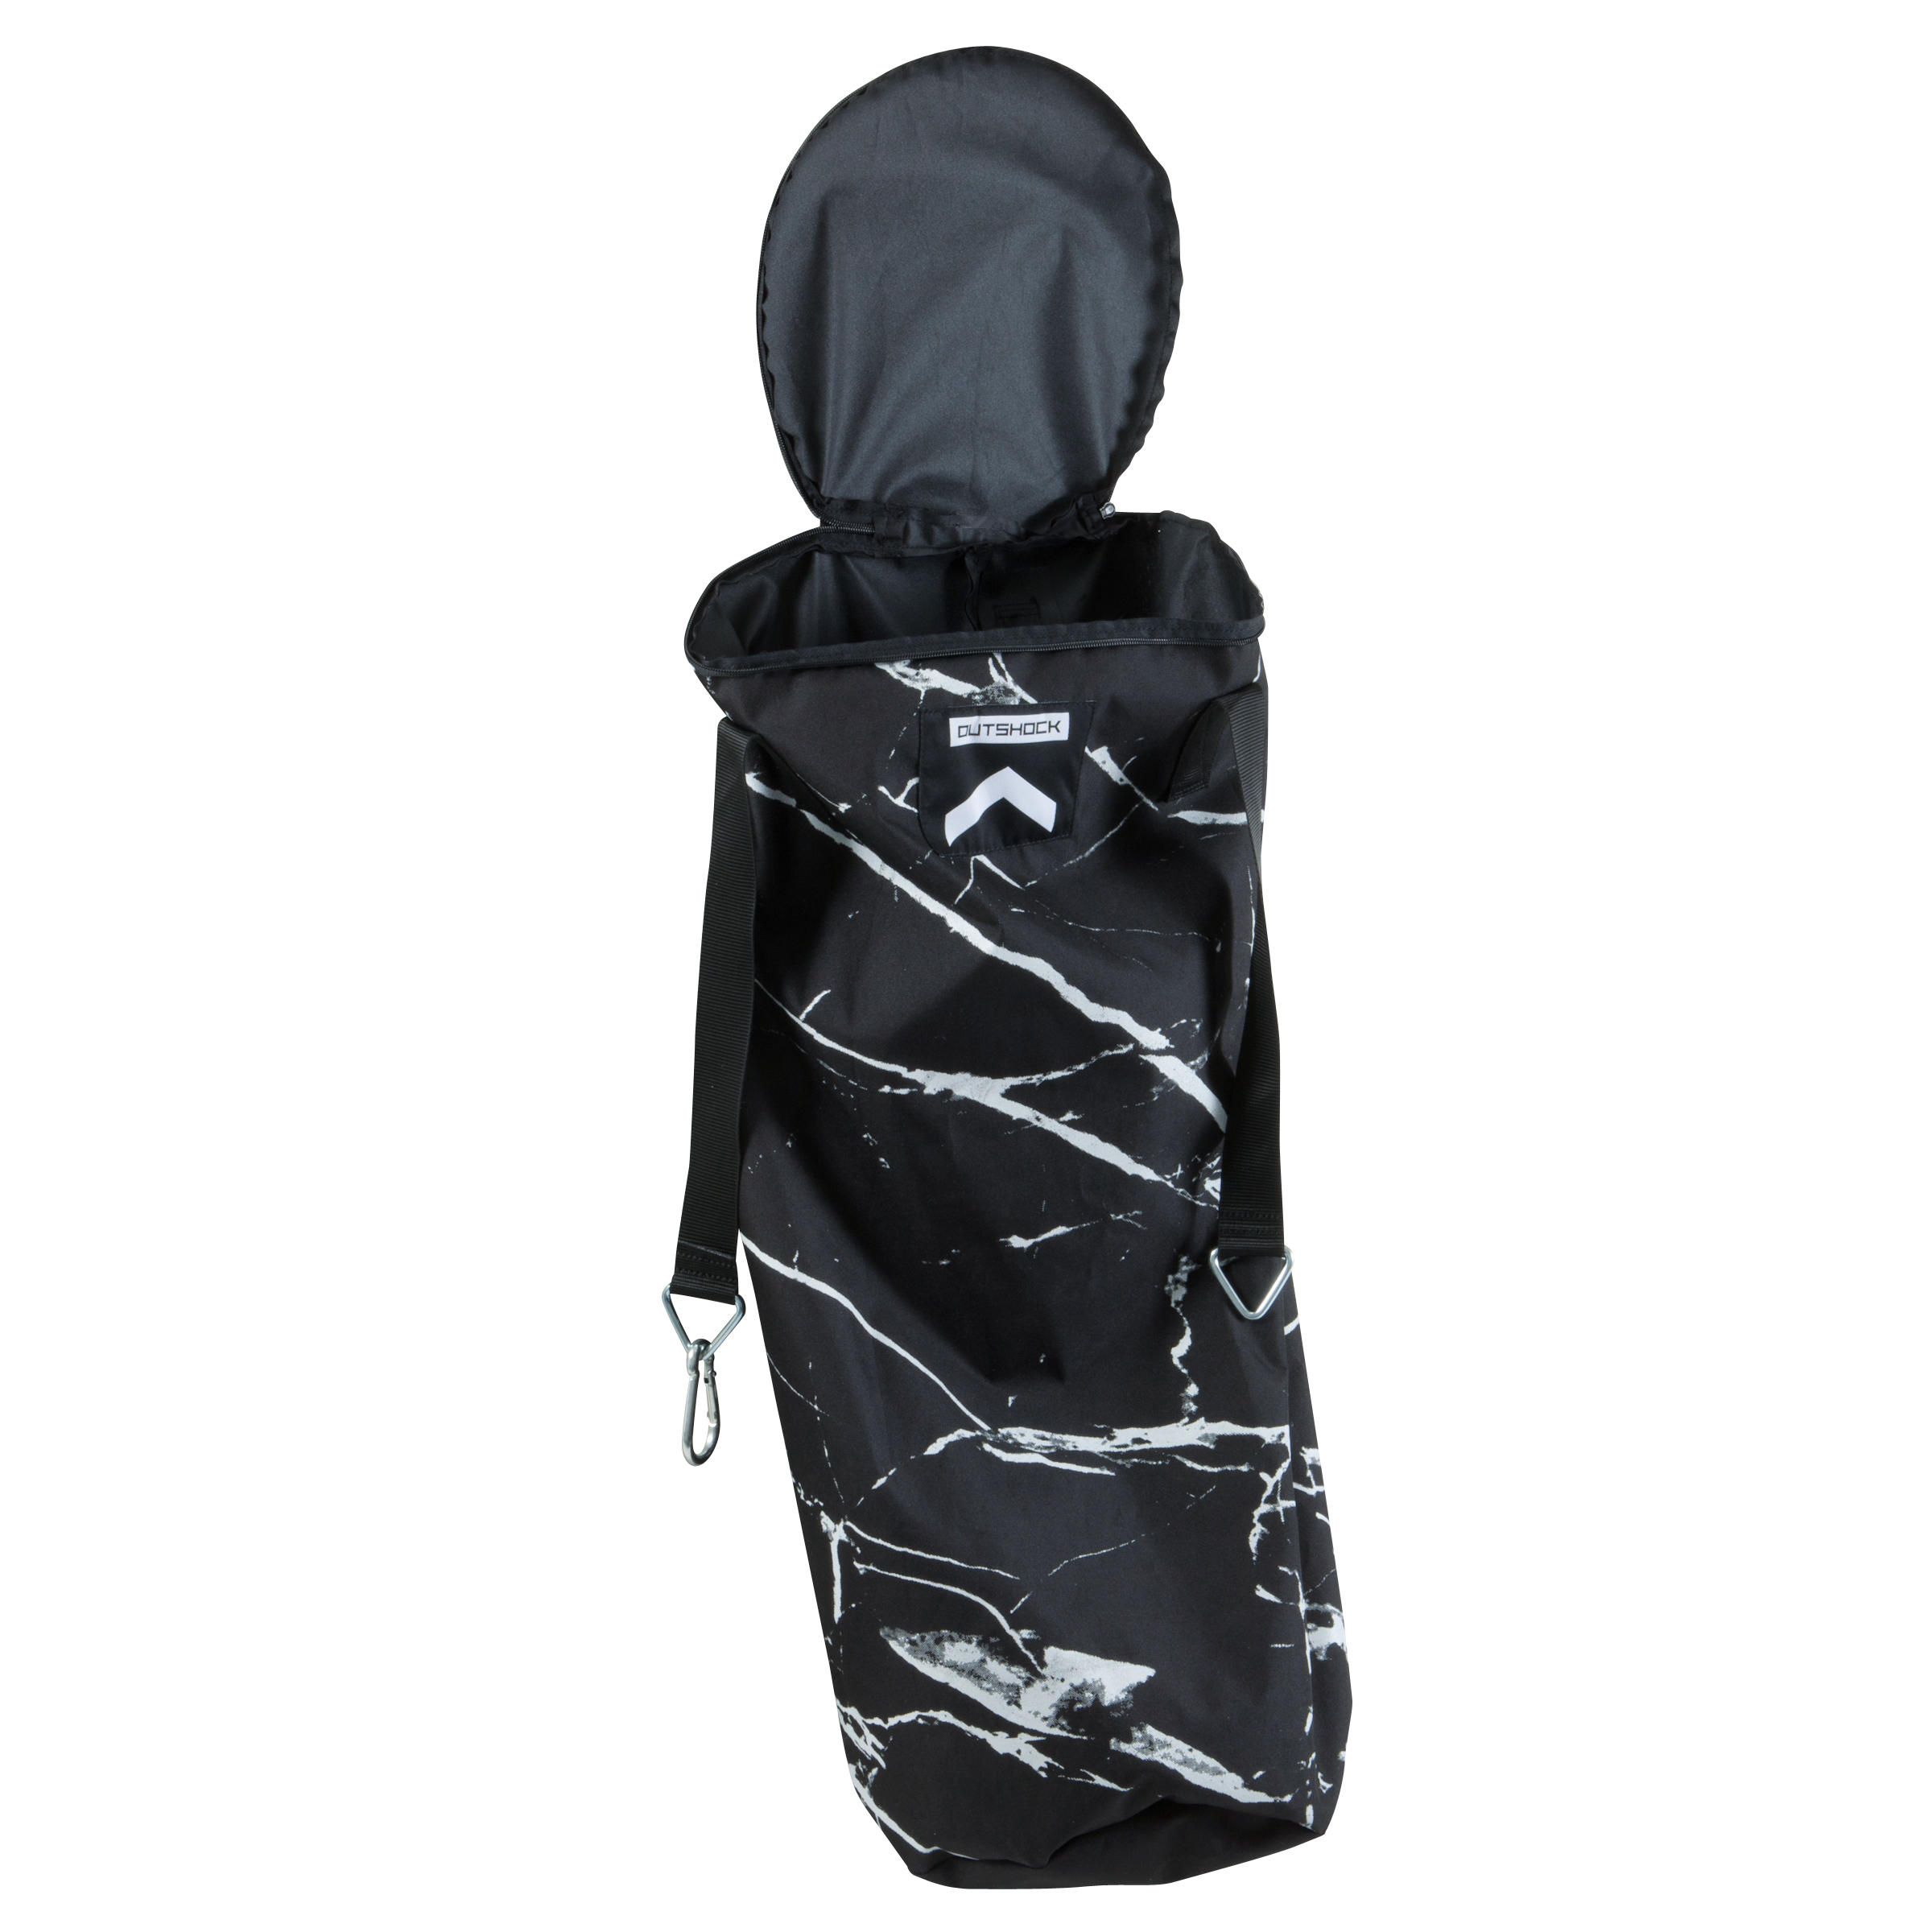 850 Empty Punch Bag - Marble Black White